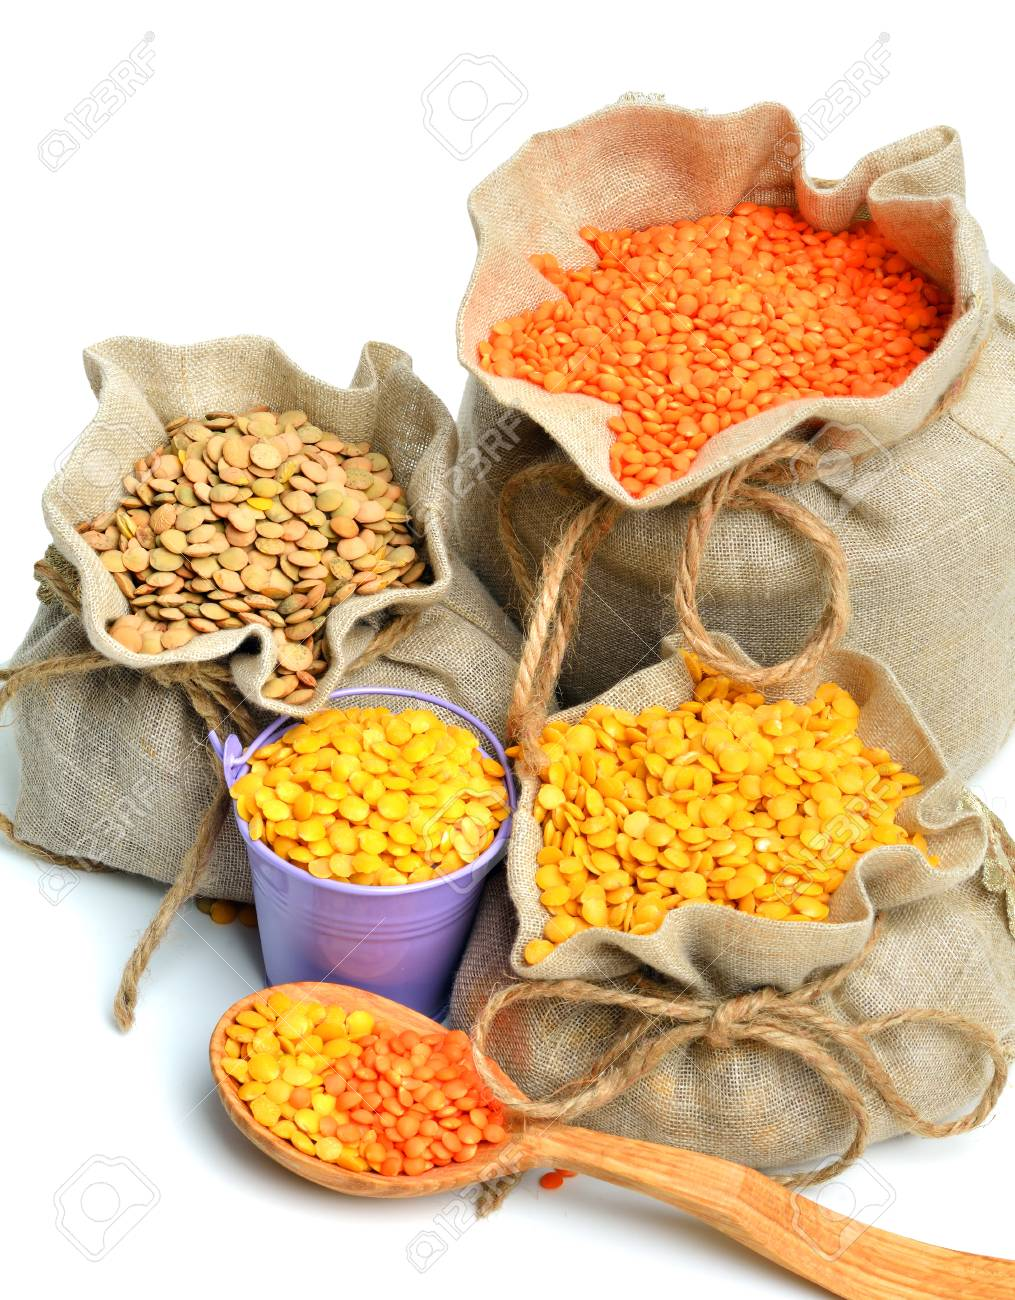 green, red and yellow lentils in the sacks and spoon wooden isolated on white background - 36968775